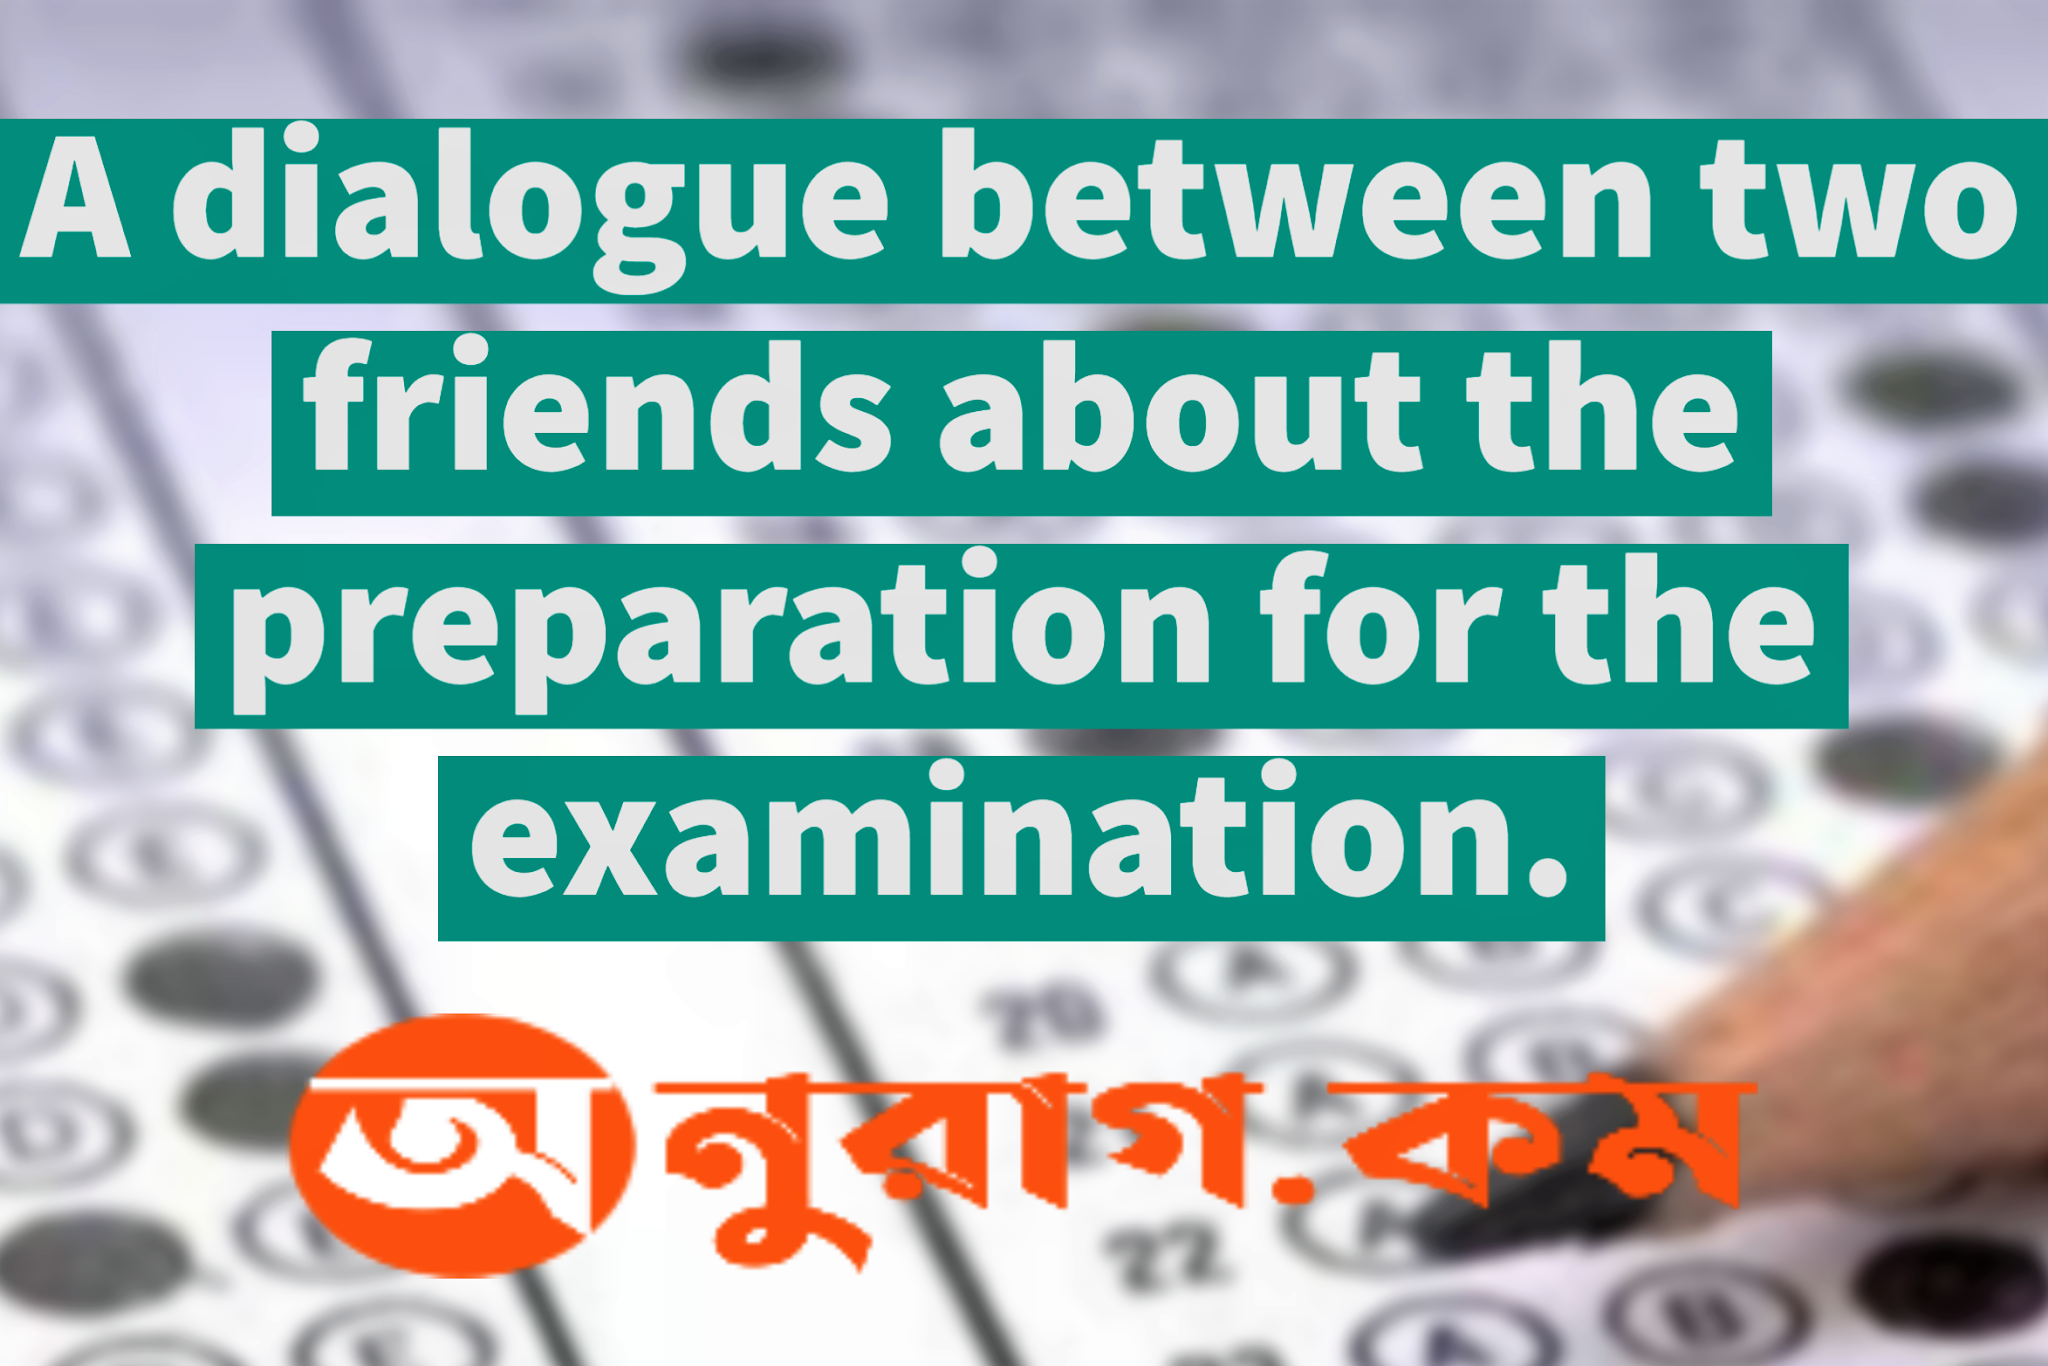 A dialogue between two friends about the preparation for the examination.